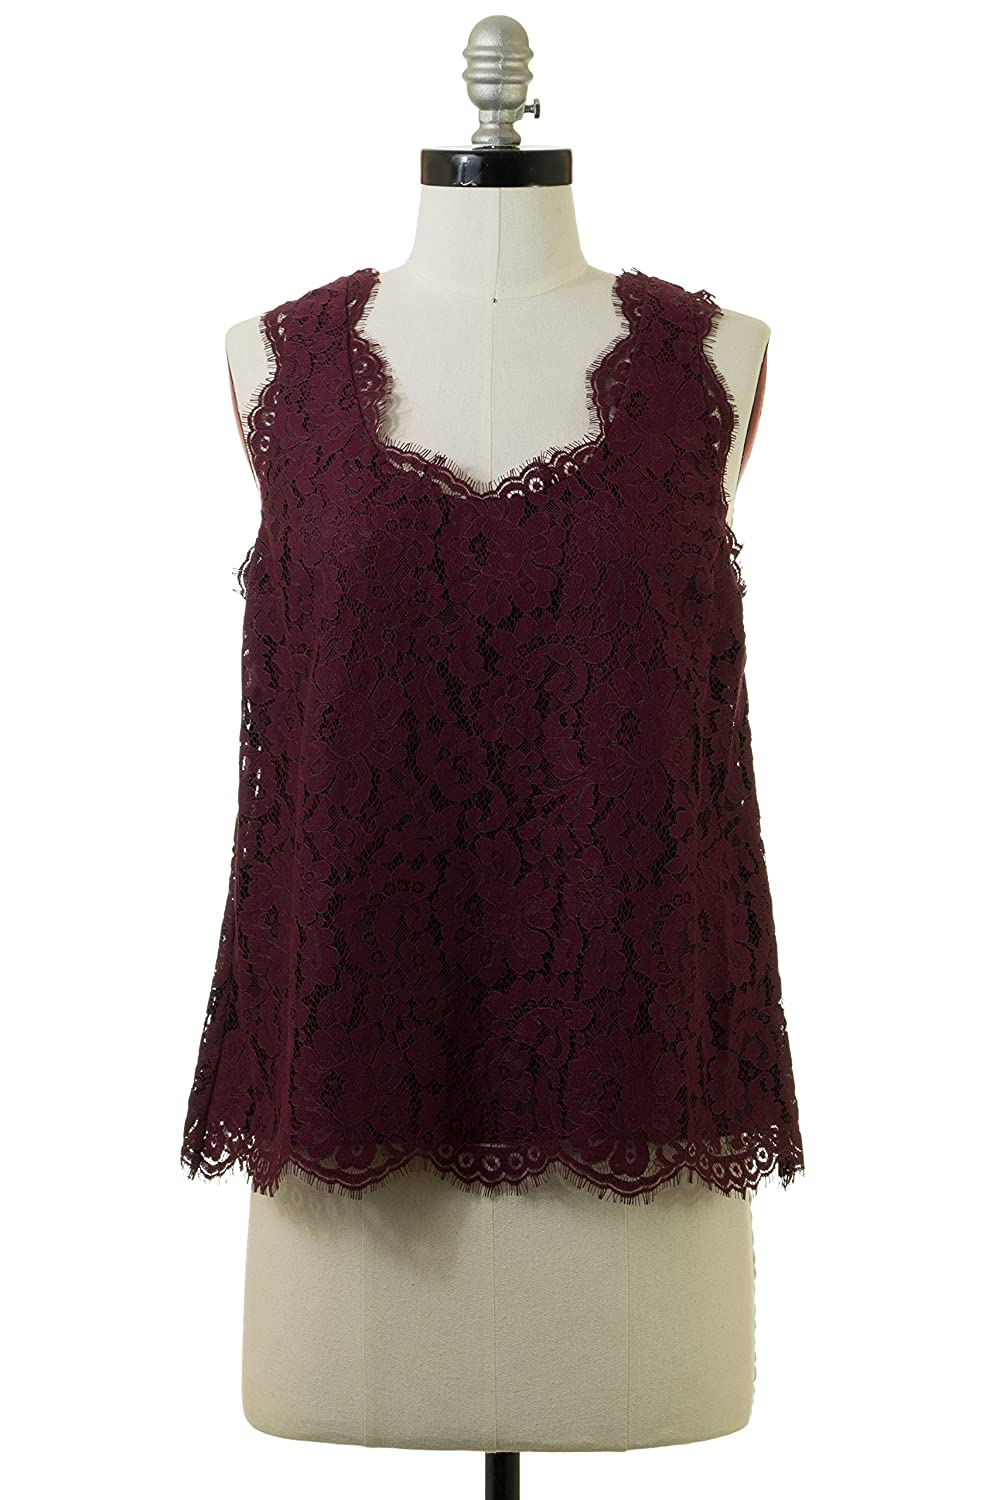 Joie Cina Tank in Raisin